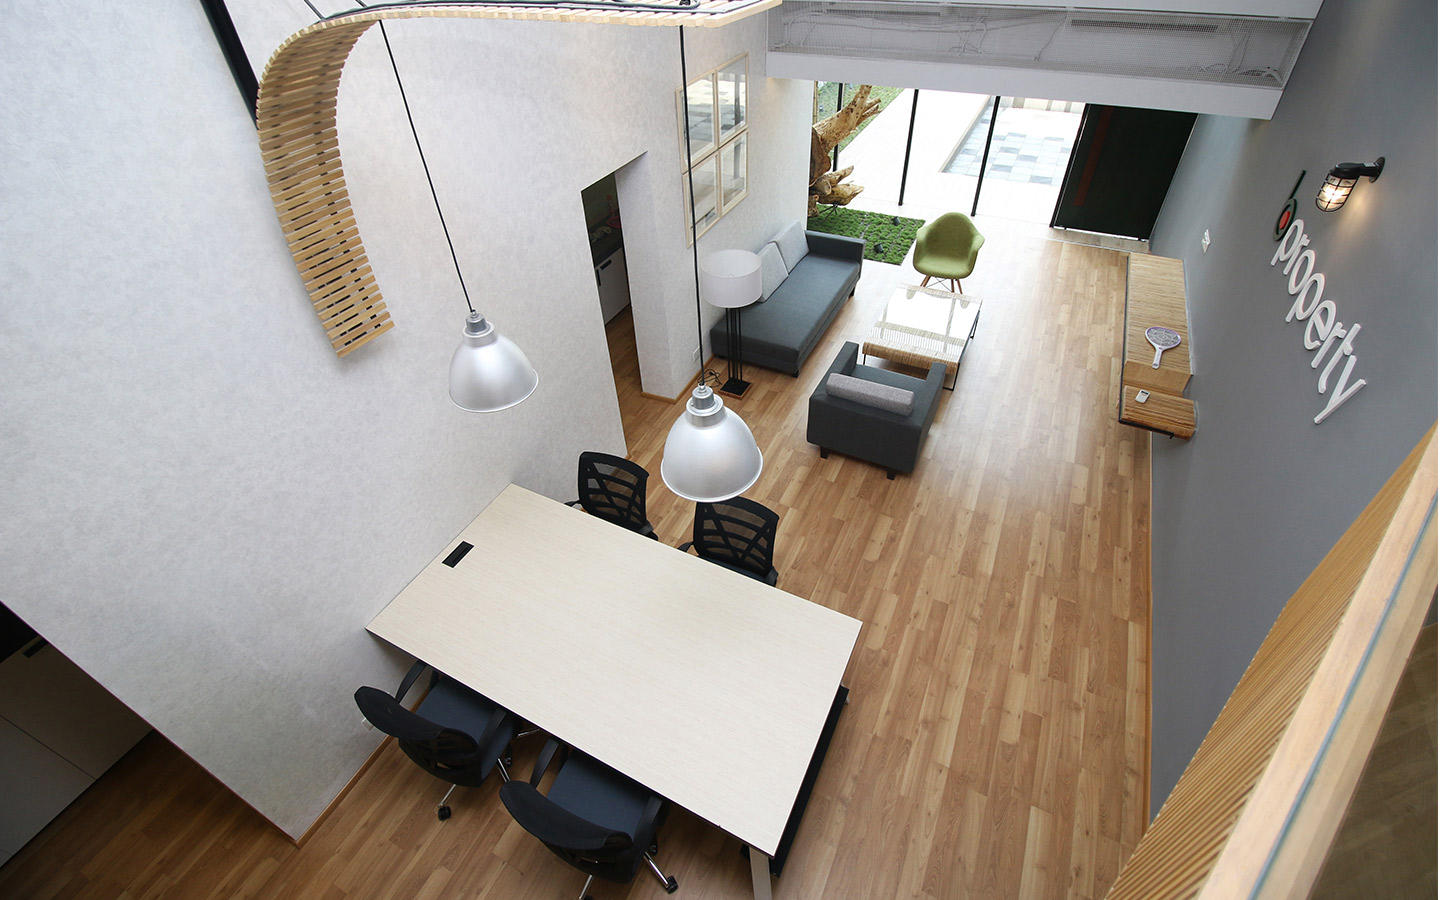 The banani office interior of Bproperty